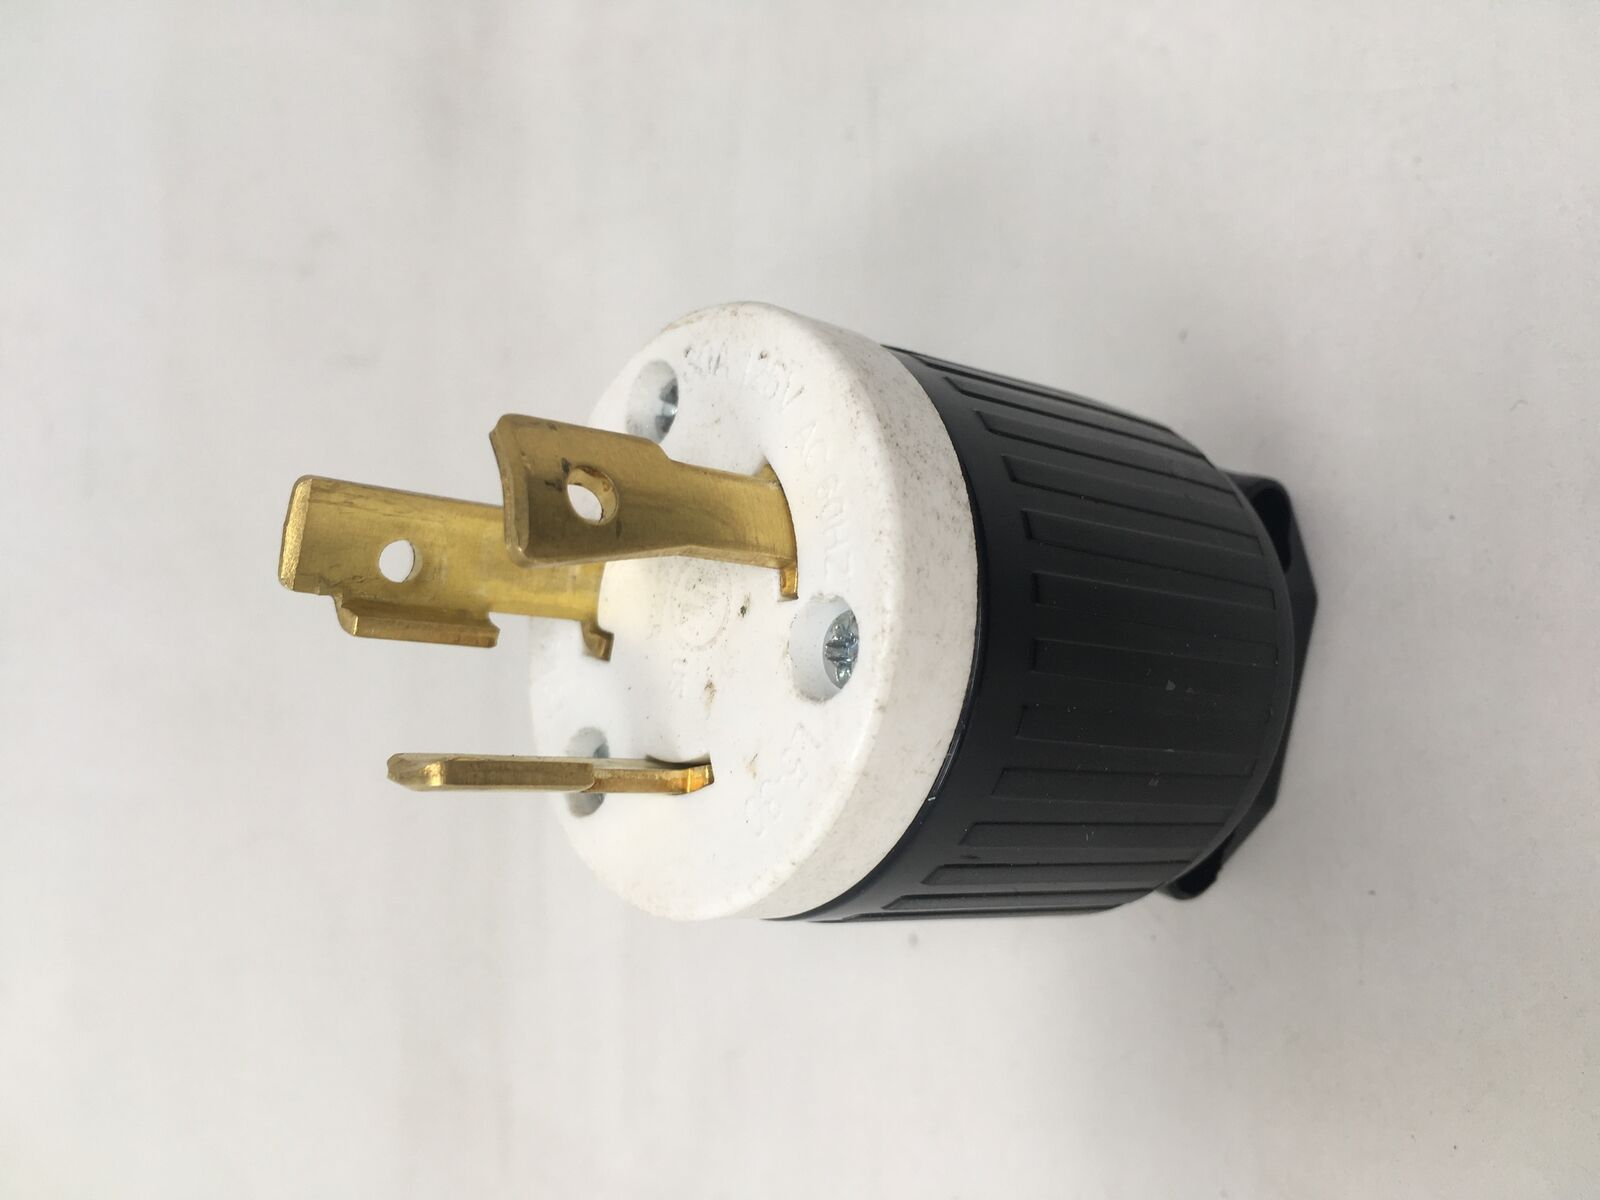 Agt Yga024 Superior Electric Twist Lock Electrical Plug 3 Wire 30 Extension Cord Replacement Plugs 15amp 125v Prong Ebay Norton Secured Powered By Verisign